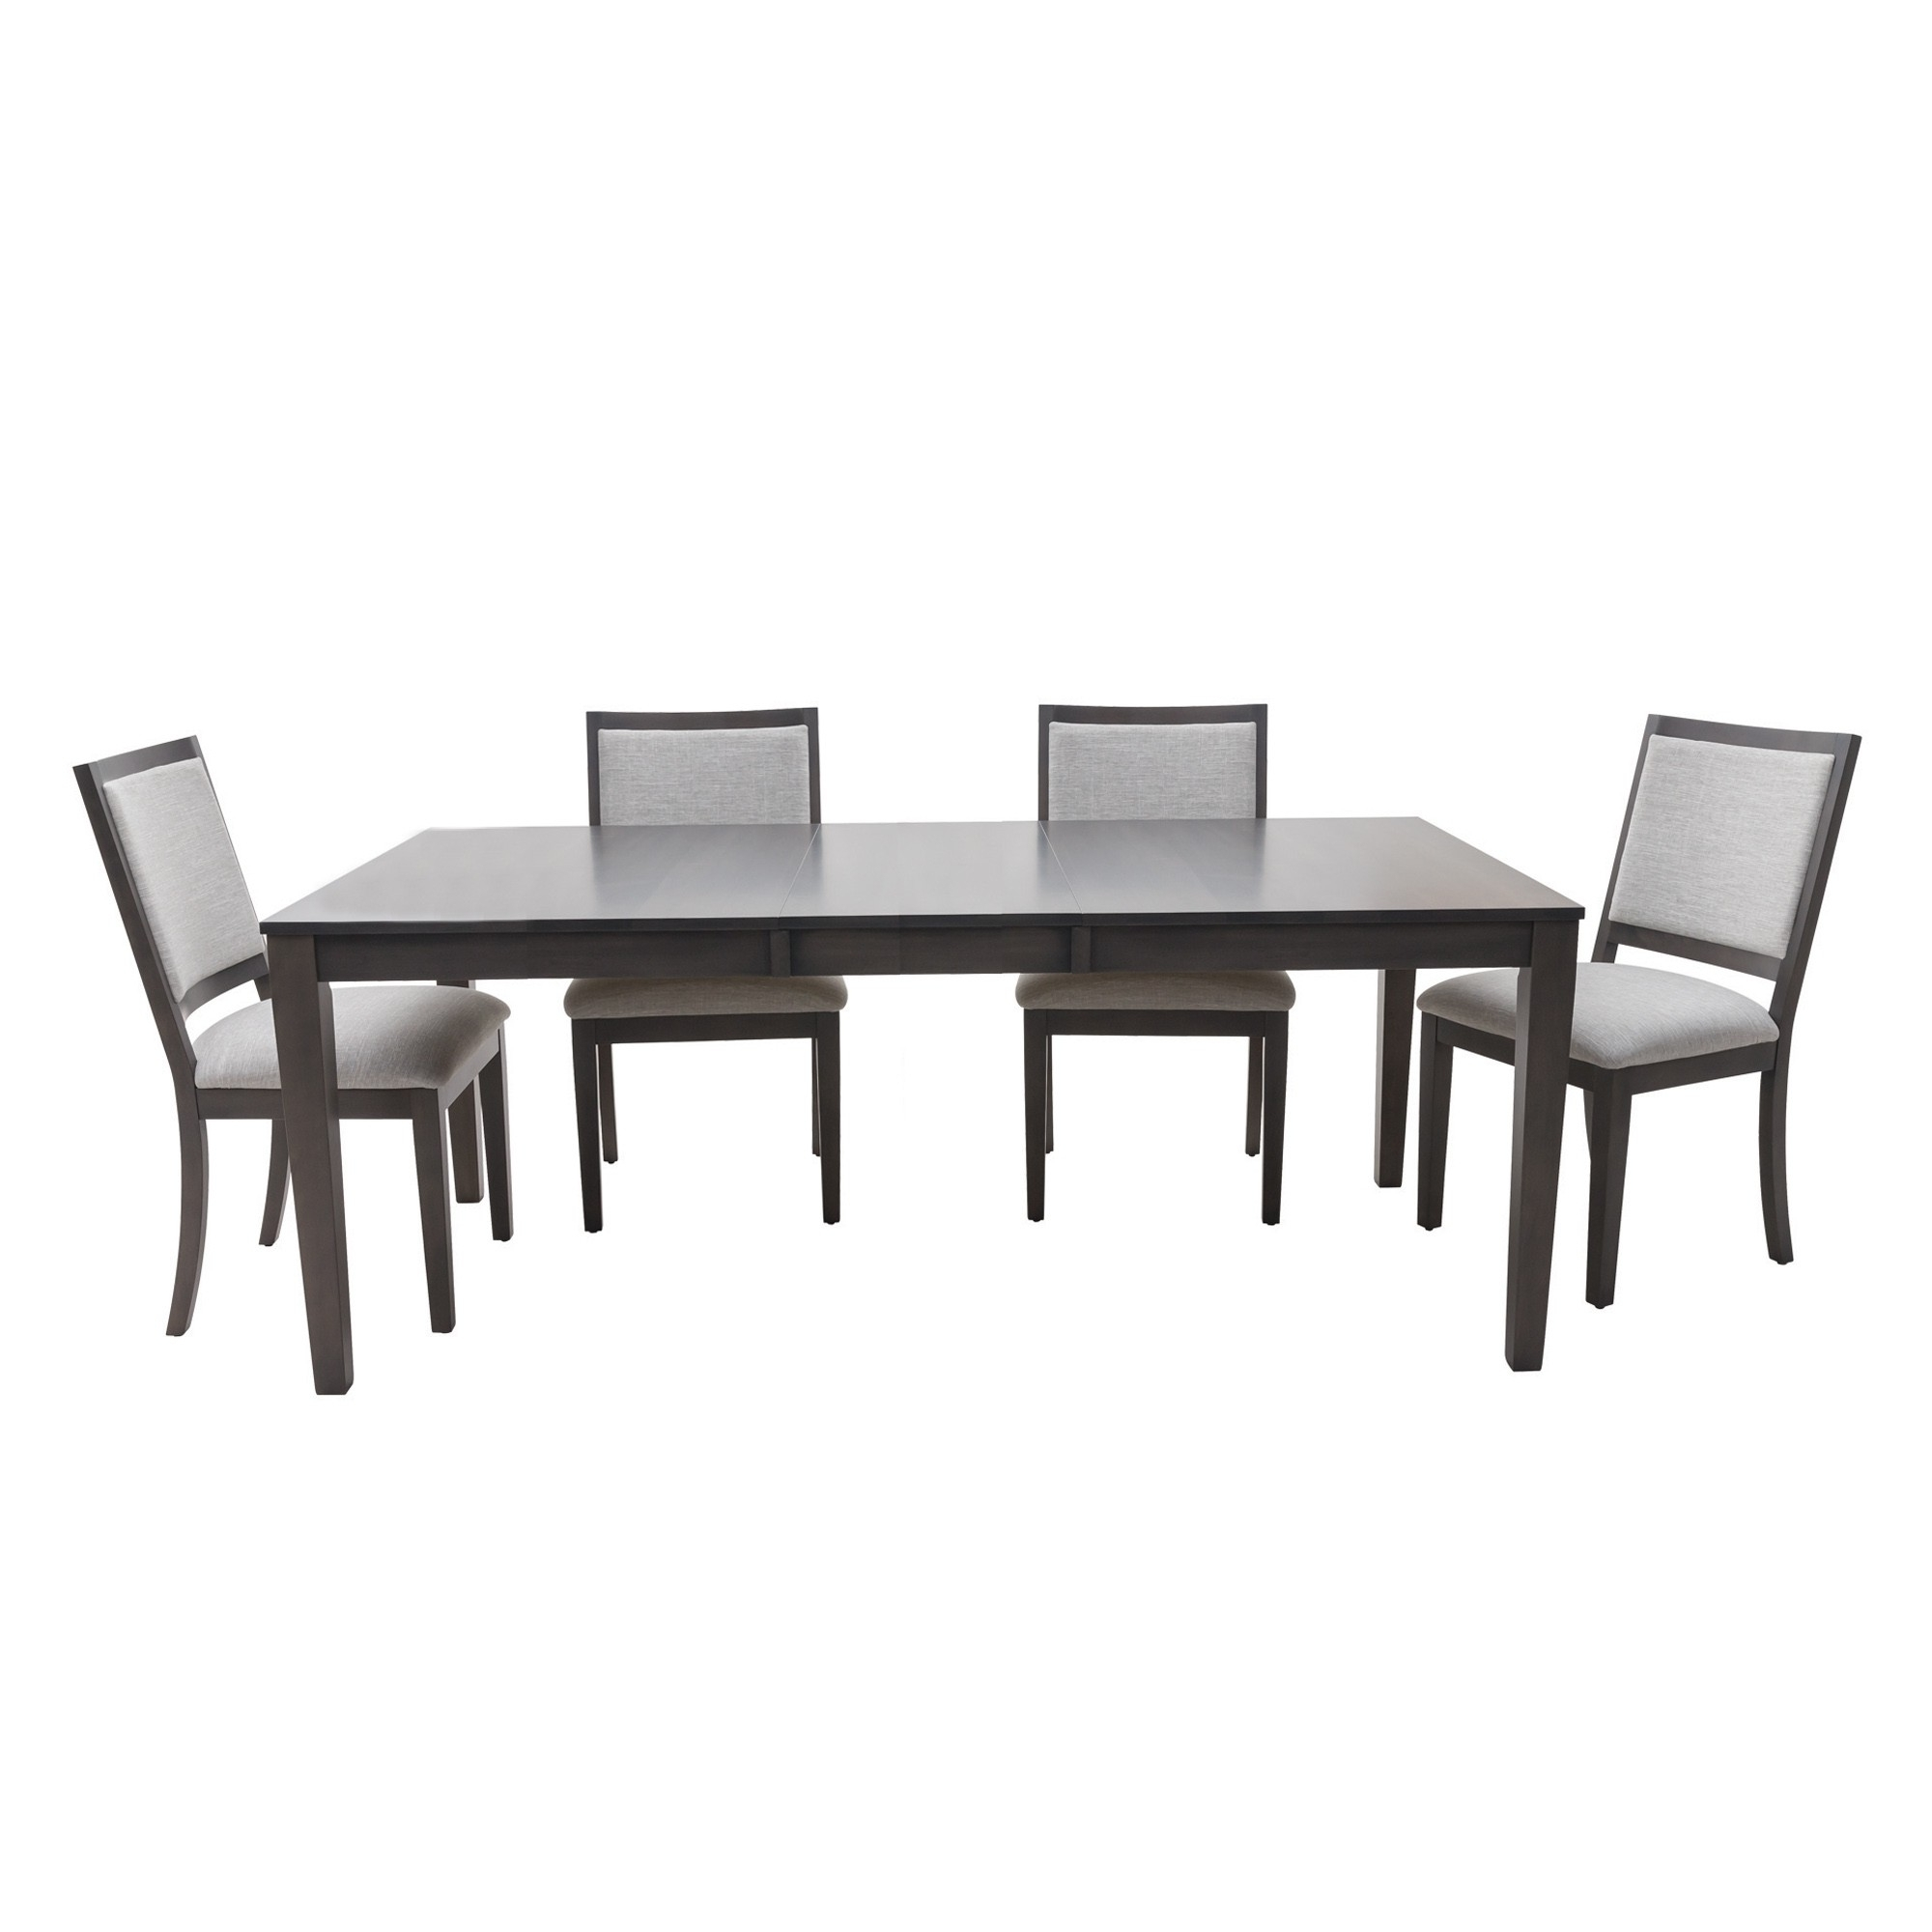 Preferred Glasgow Dining Sets Regarding Glasgow 5Pc Dining Set Table With 4 Chairs (View 4 of 25)